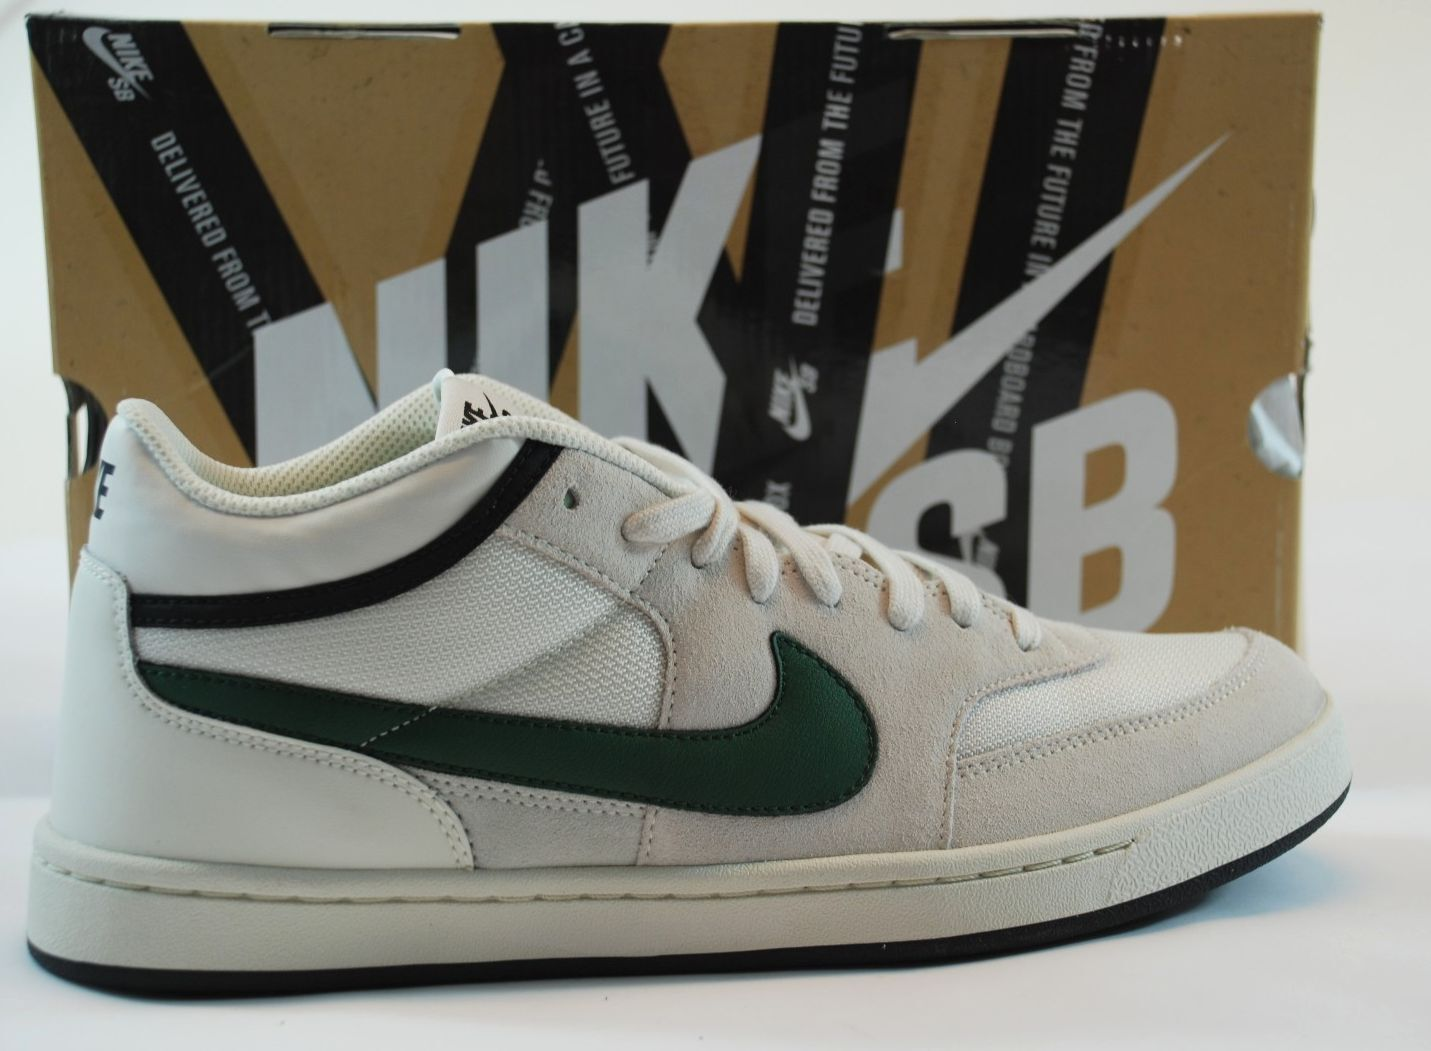 Nike CHALLENGE COURT SB Swan Gorge Green noir Discounted (169) homme chaussures